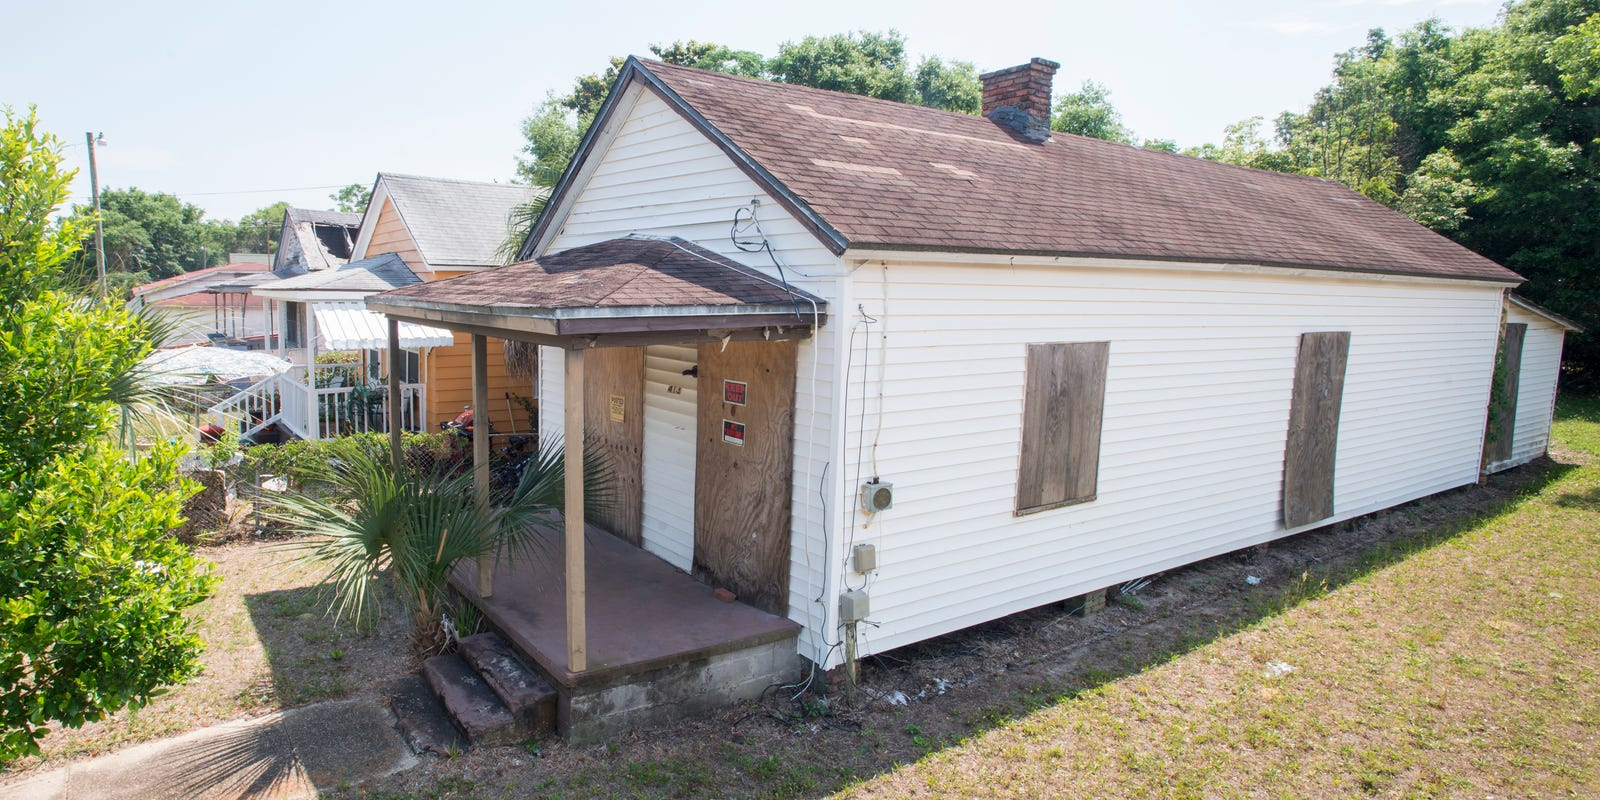 Pensacola Sos Working To Save Historic Homes From Demolition